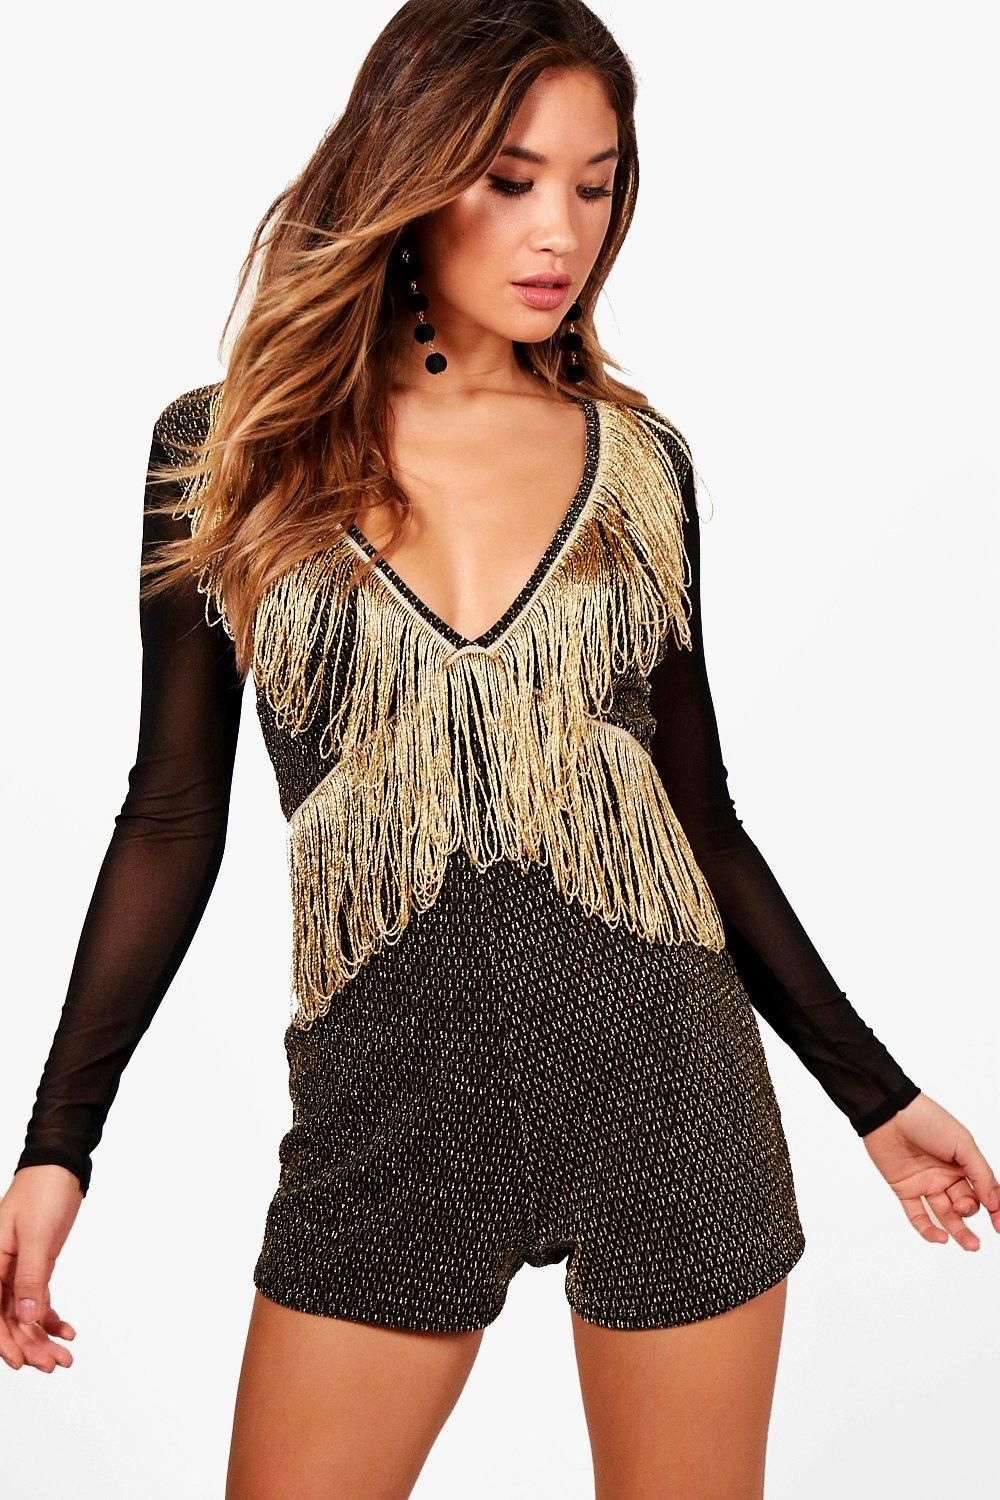 673c94f2 Click here to find out about the Tassel Trim Statement Playsuit from  Boohoo, part of our latest Sale Playsuits & Jumpsuits collection ready to  shop online ...